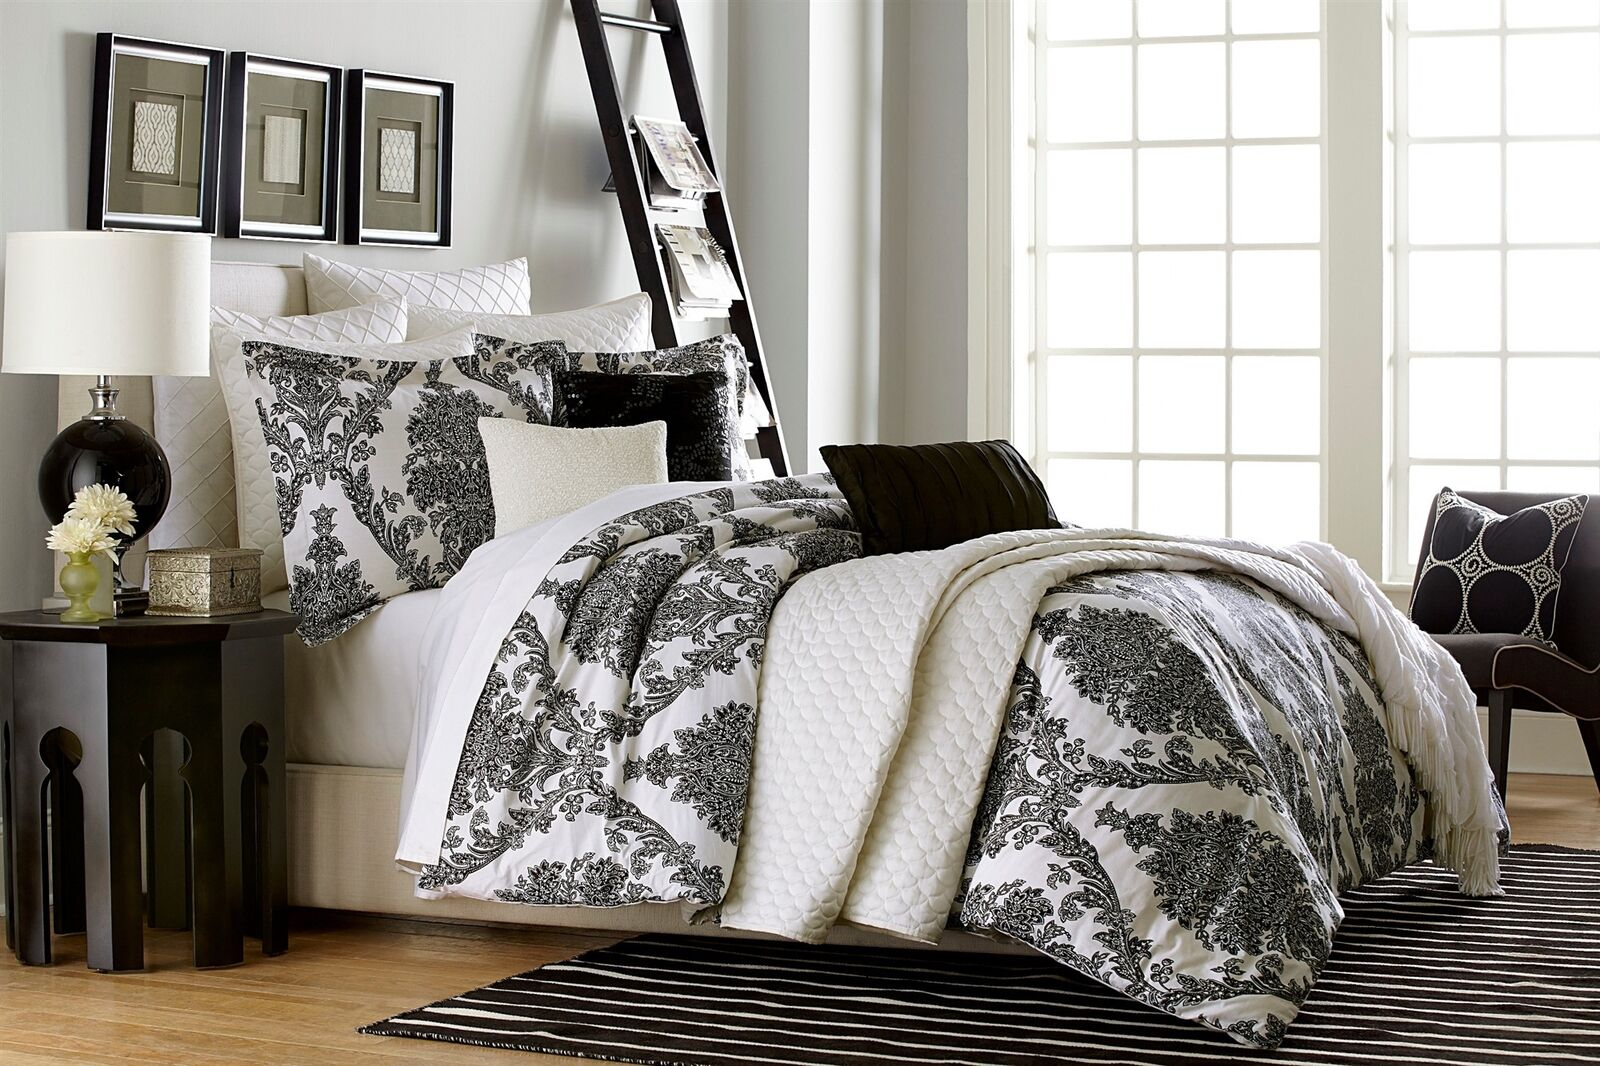 5 Pc Jaclyn Smith  ANTIQUE SCROLL  Comforter Set  King 104  x 94  NEW